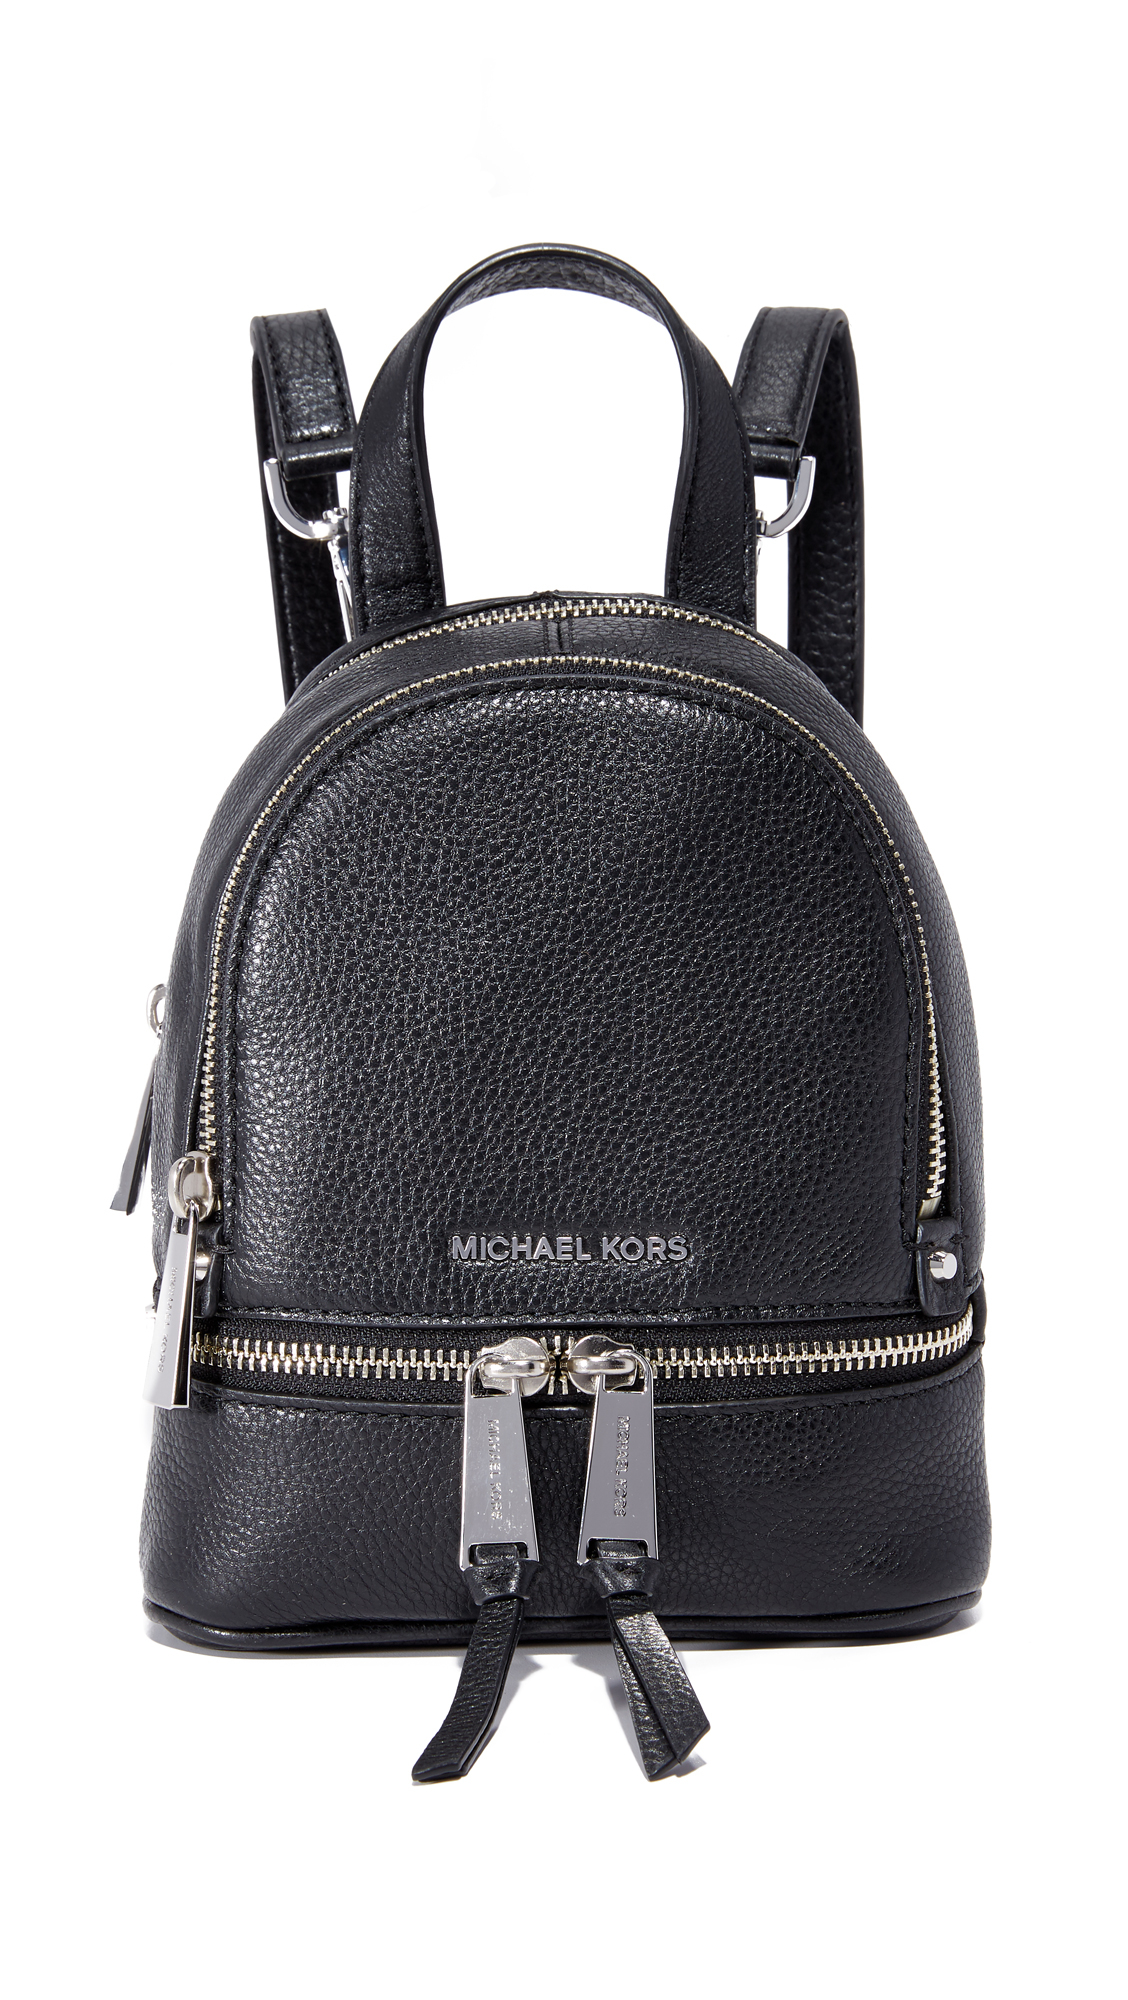 4b3aa1568a0b Michael Kors Bags Mini Backpack | Stanford Center for Opportunity ...